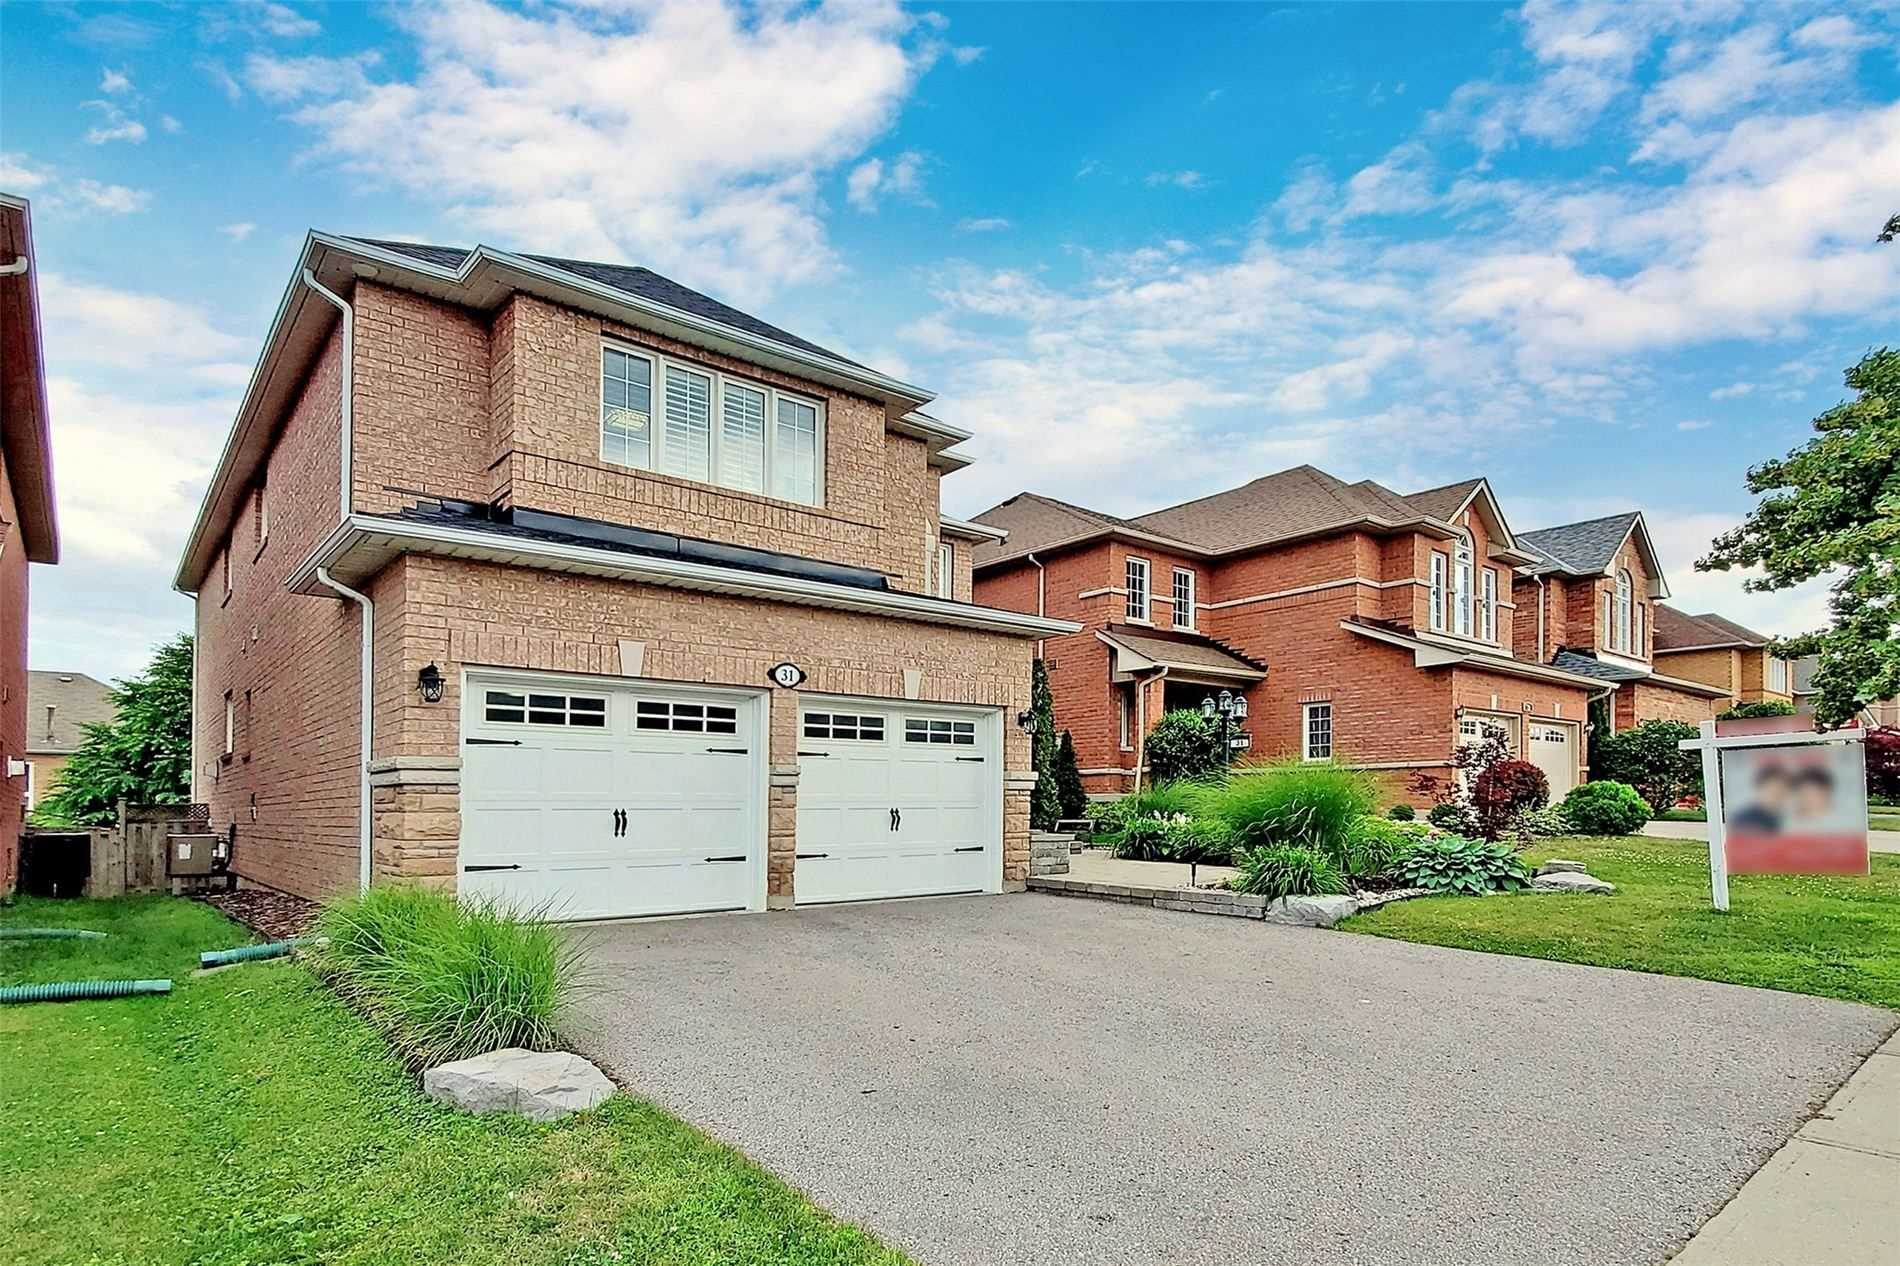 Detached house For Sale In Richmond Hill - 31 Falling River Dr, Richmond Hill, Ontario, Canada L4S2R1 , 4 Bedrooms Bedrooms, ,4 BathroomsBathrooms,Detached,For Sale,Falling River